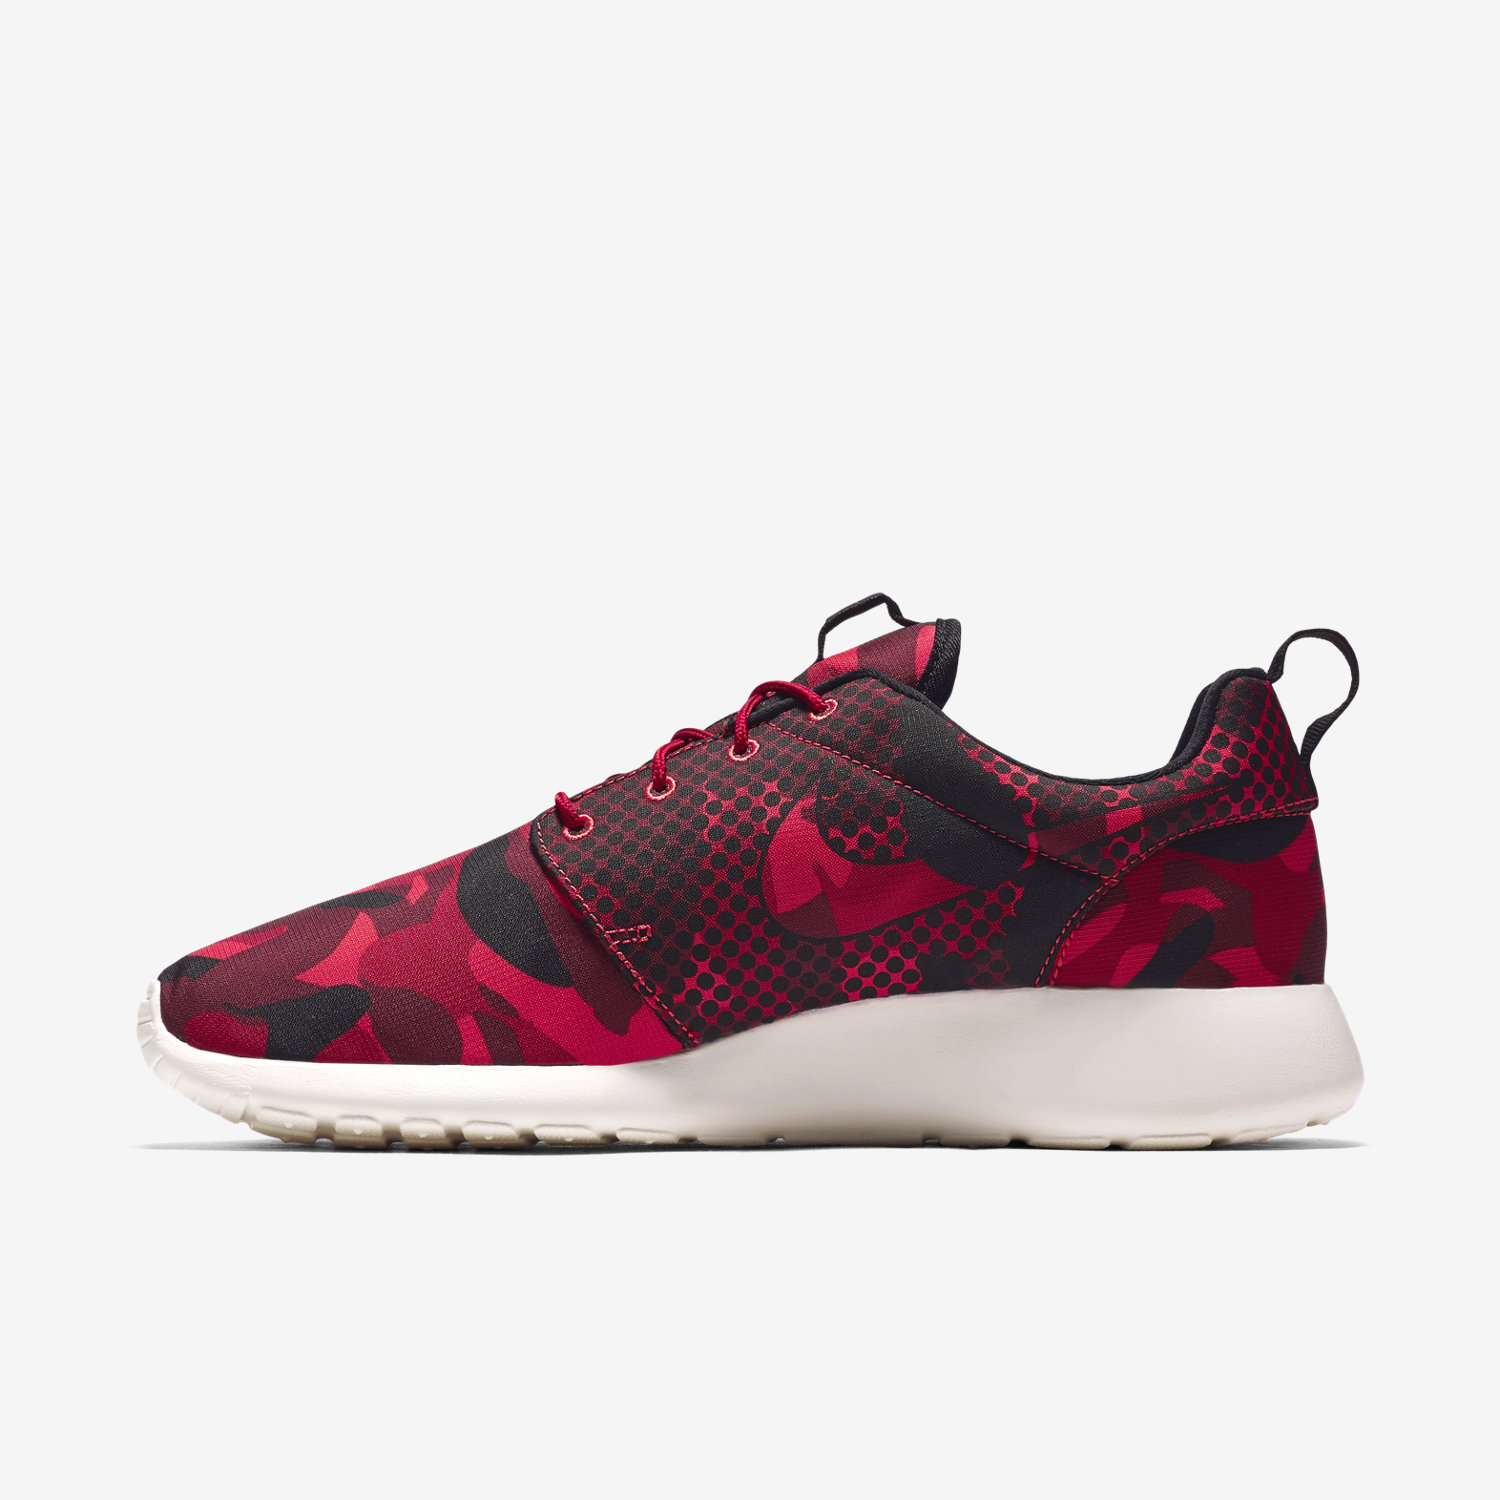 nike men s roshe run print sneakers - Santillana ...